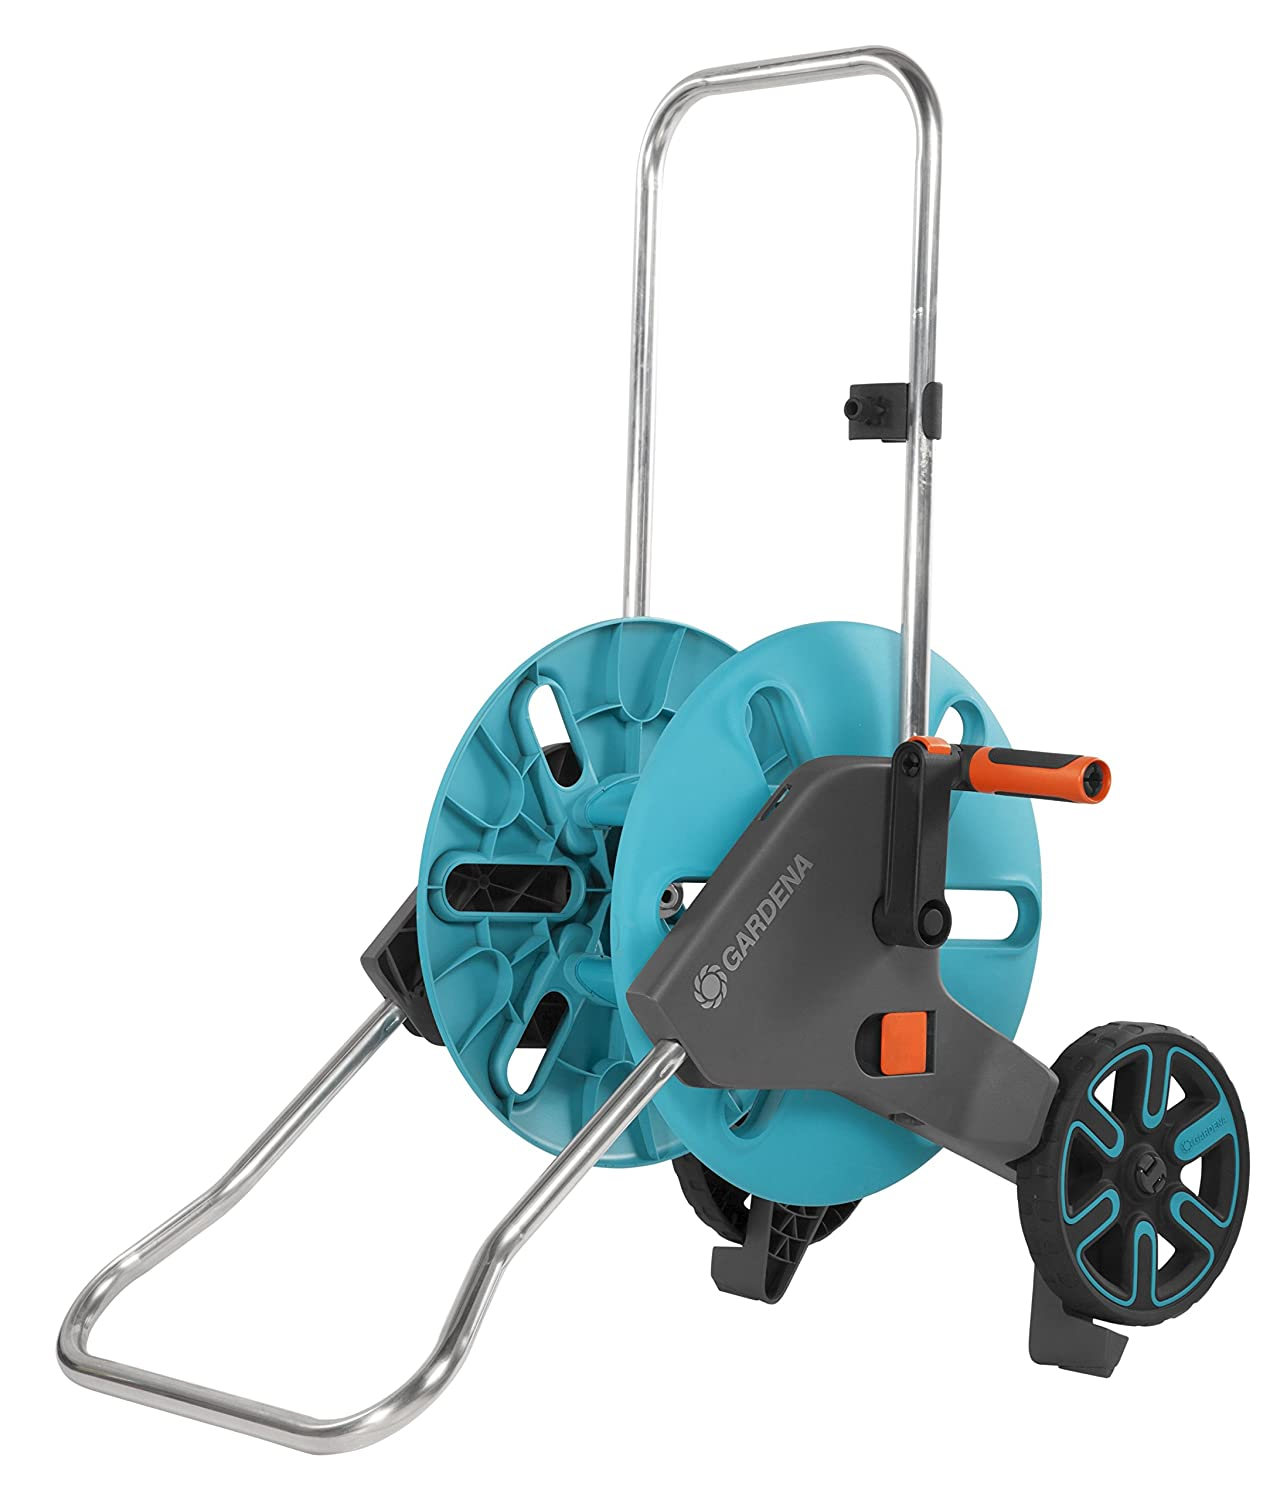 GARDENA Metal Hose Trolley 60: Mobile hose reel with up to 60 m capacity (given 13 mm hose); height-adjustable handle with hand protection, anti-drip device, free-running crank handle (2681-20) 2681-U